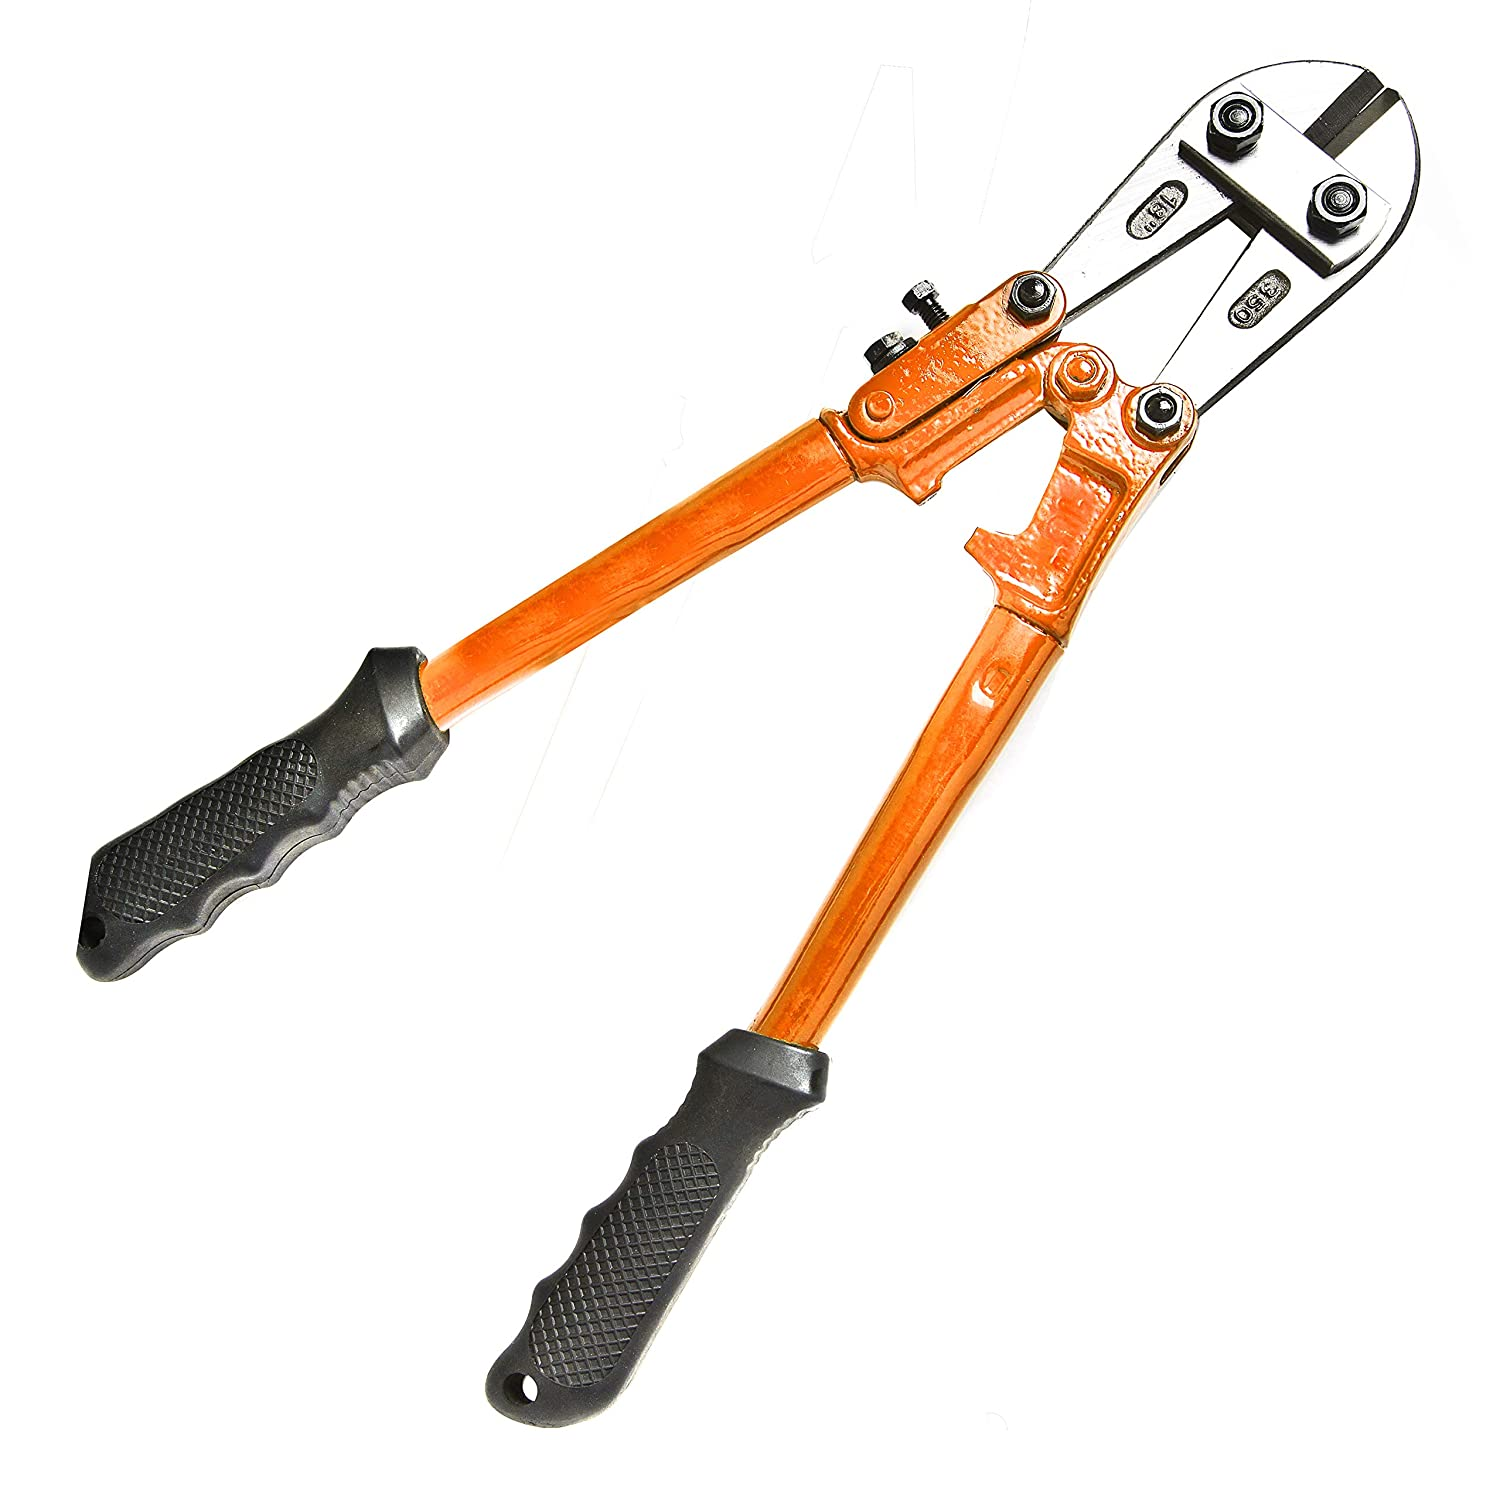 Brackit Heavy Duty 18in Bolt Cutter Building Carpentry 450mm Mini Cropper Tool with Rubberized Anti-Slip Easy Grip Handles for Mechanics Plumbing